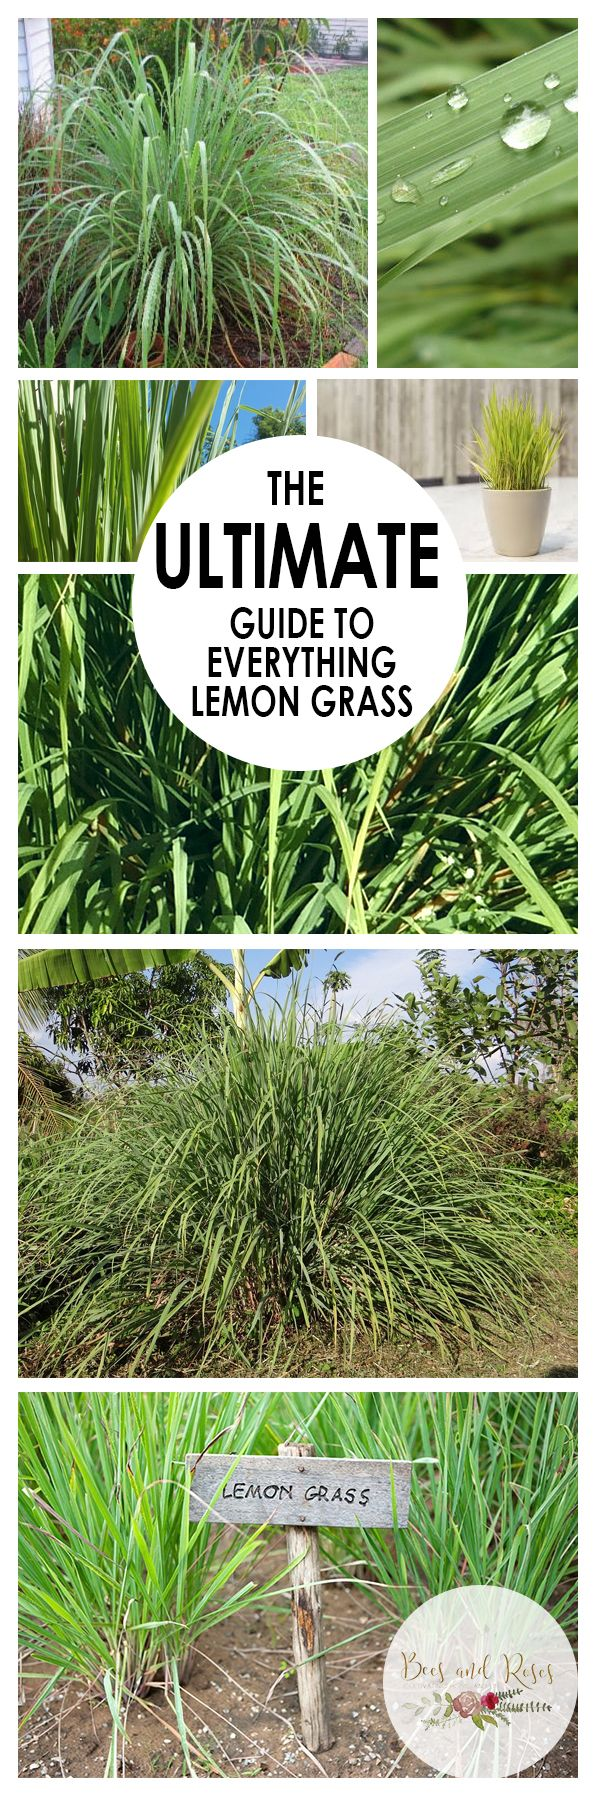 How to grow lemon grass from seed - The Ultimate Guide To Everything Lemon Grass